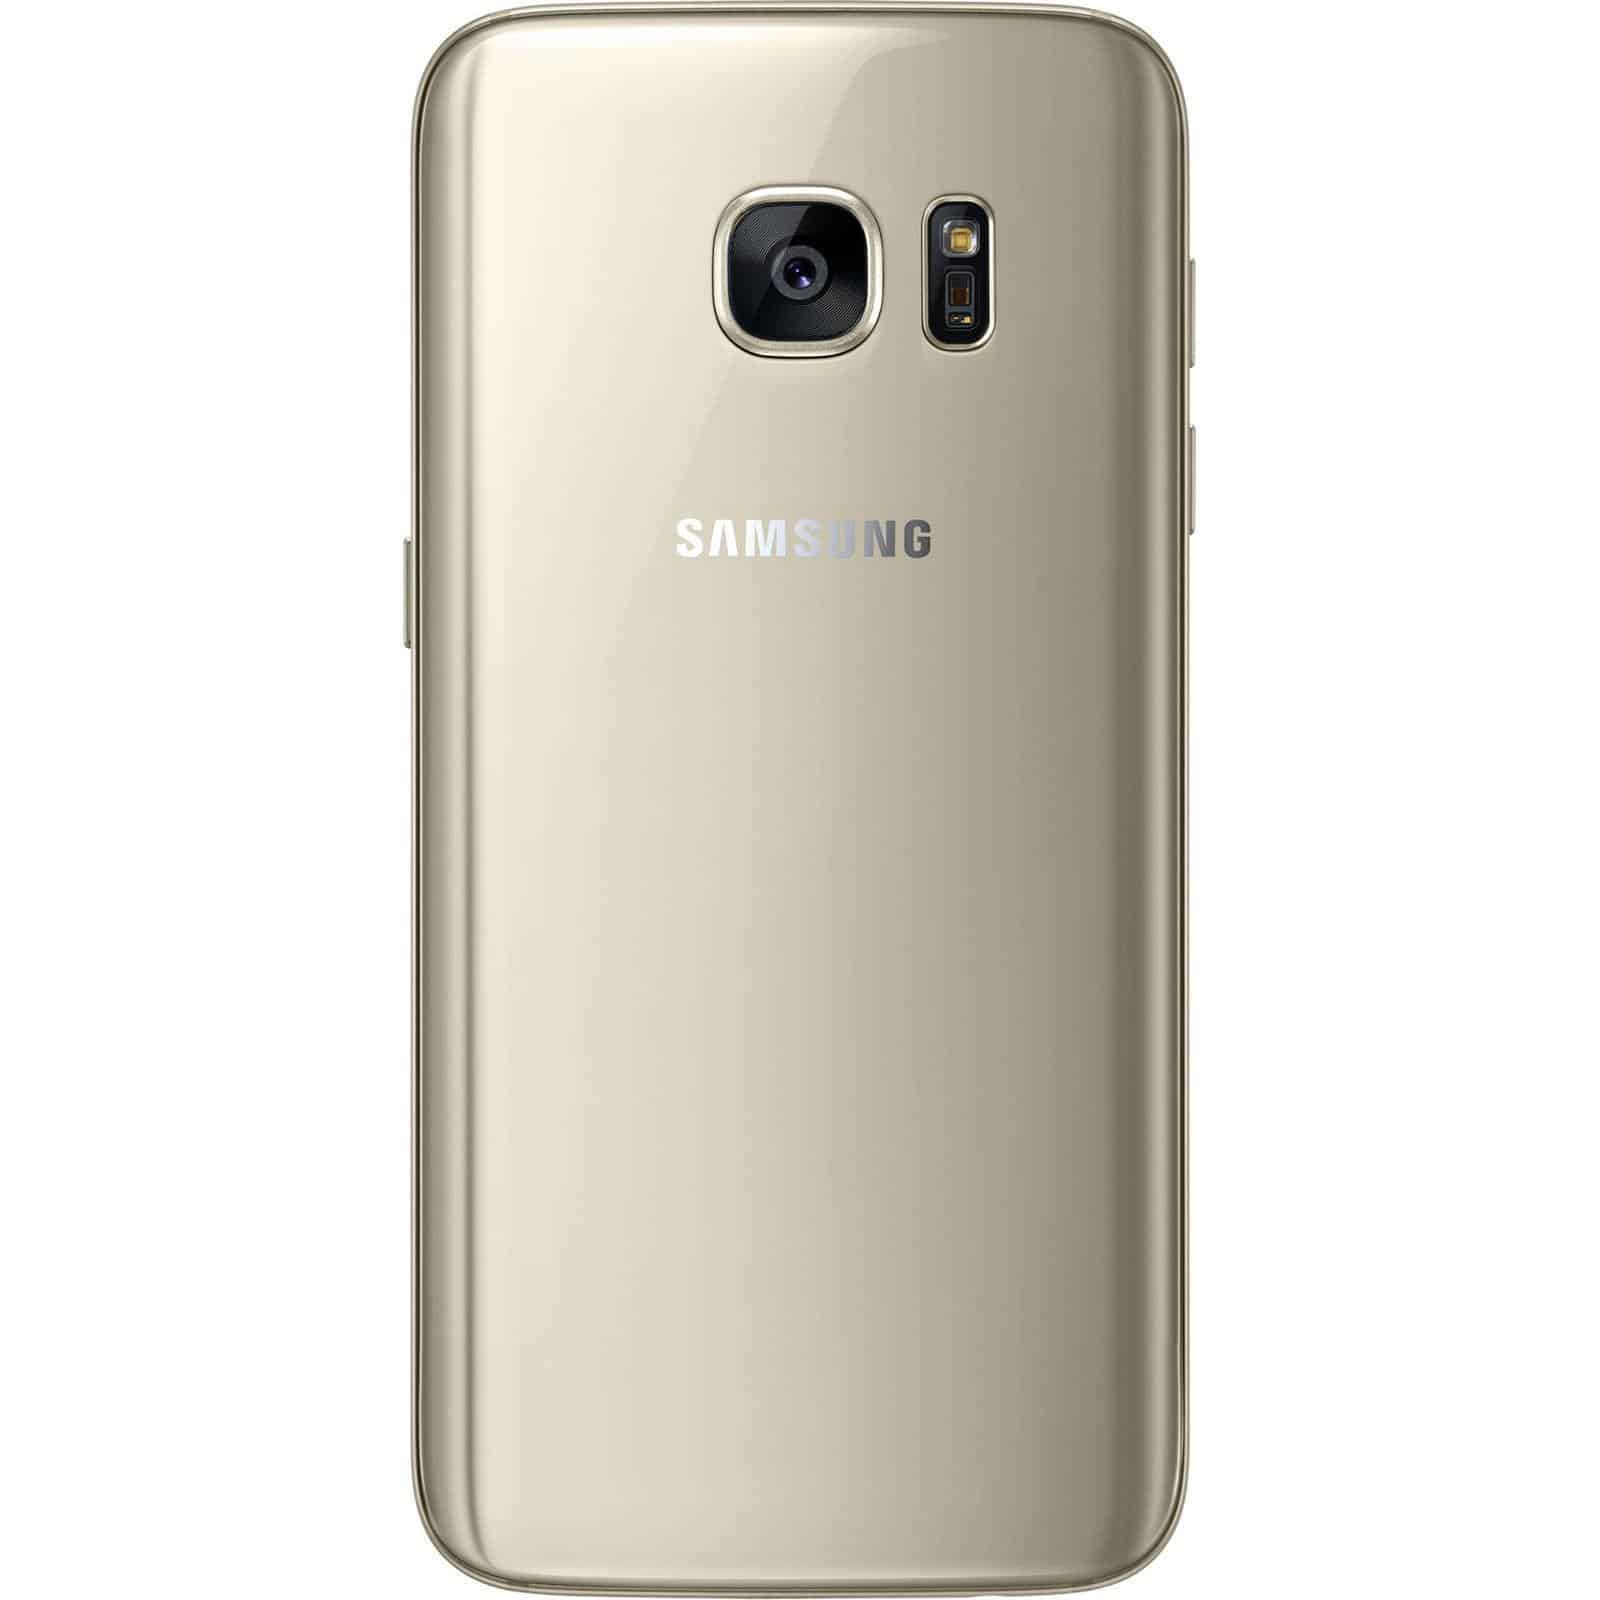 deal samsung galaxy s7 32gb at amp t 349 95   12 01 16